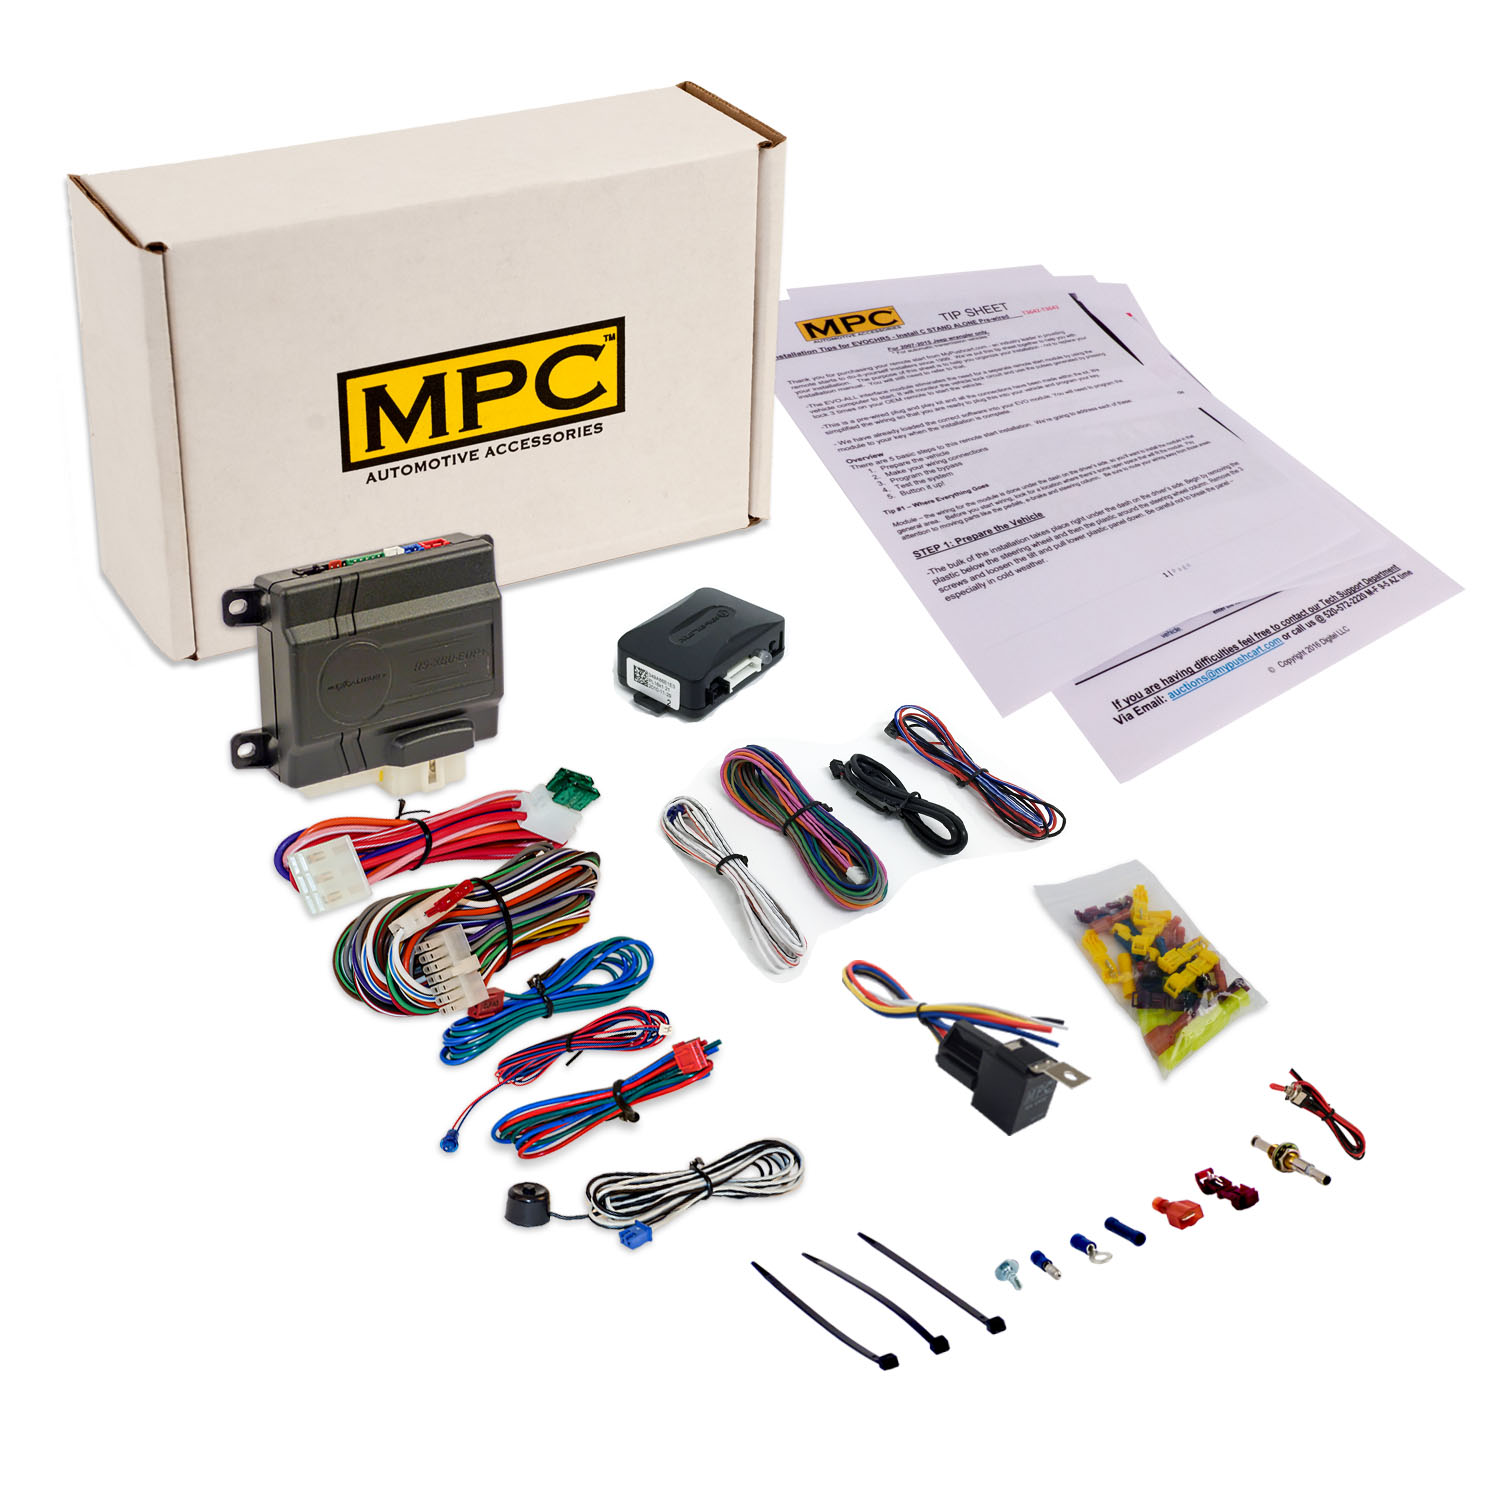 Add On Remote Start Kit For GM Vehicles W/ Keyless Bypass